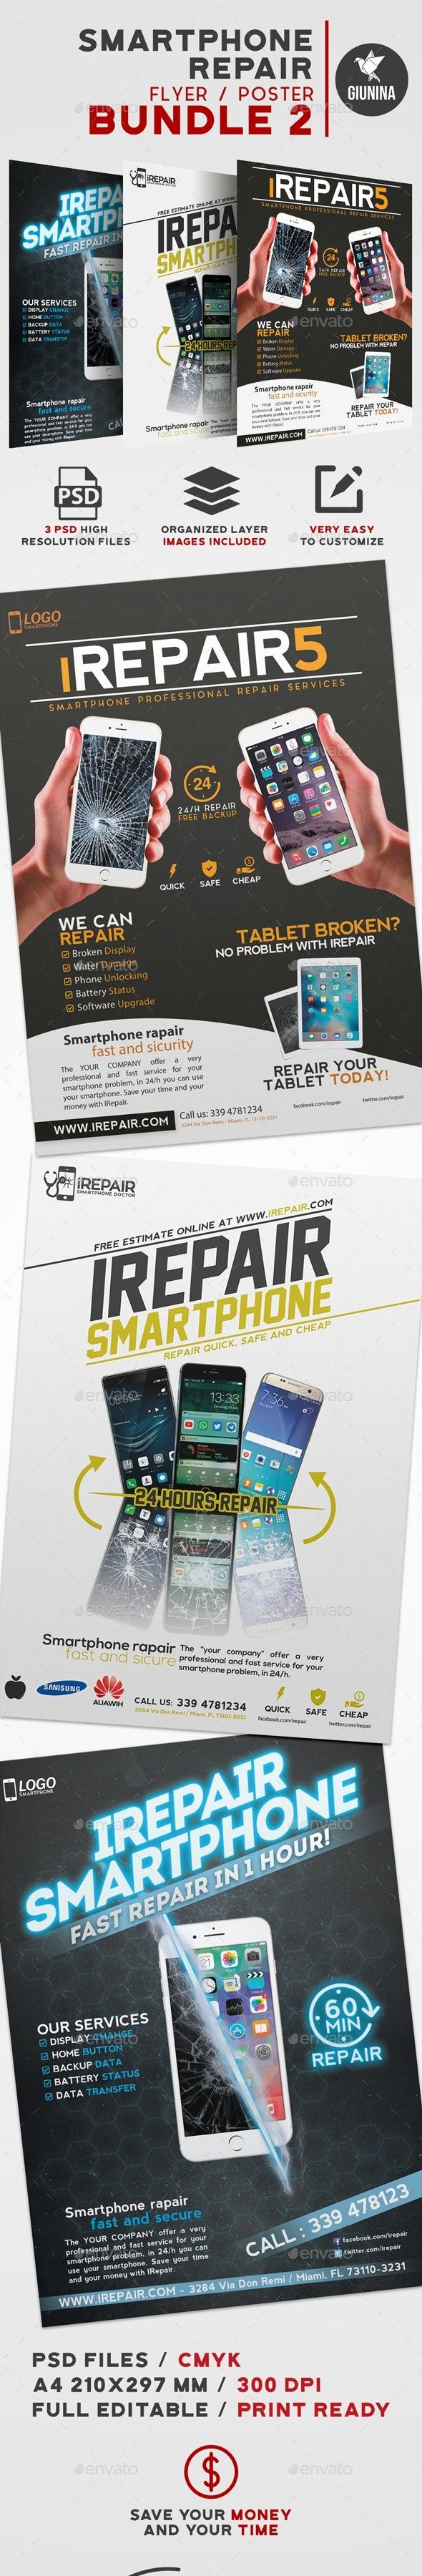 Battery Broken Bundle Cellular Damaged Display Electronics Fast Fix Flyer Mobile Pack Pad Ph With Images Smartphone Repair Business Flyer Templates Smartphone